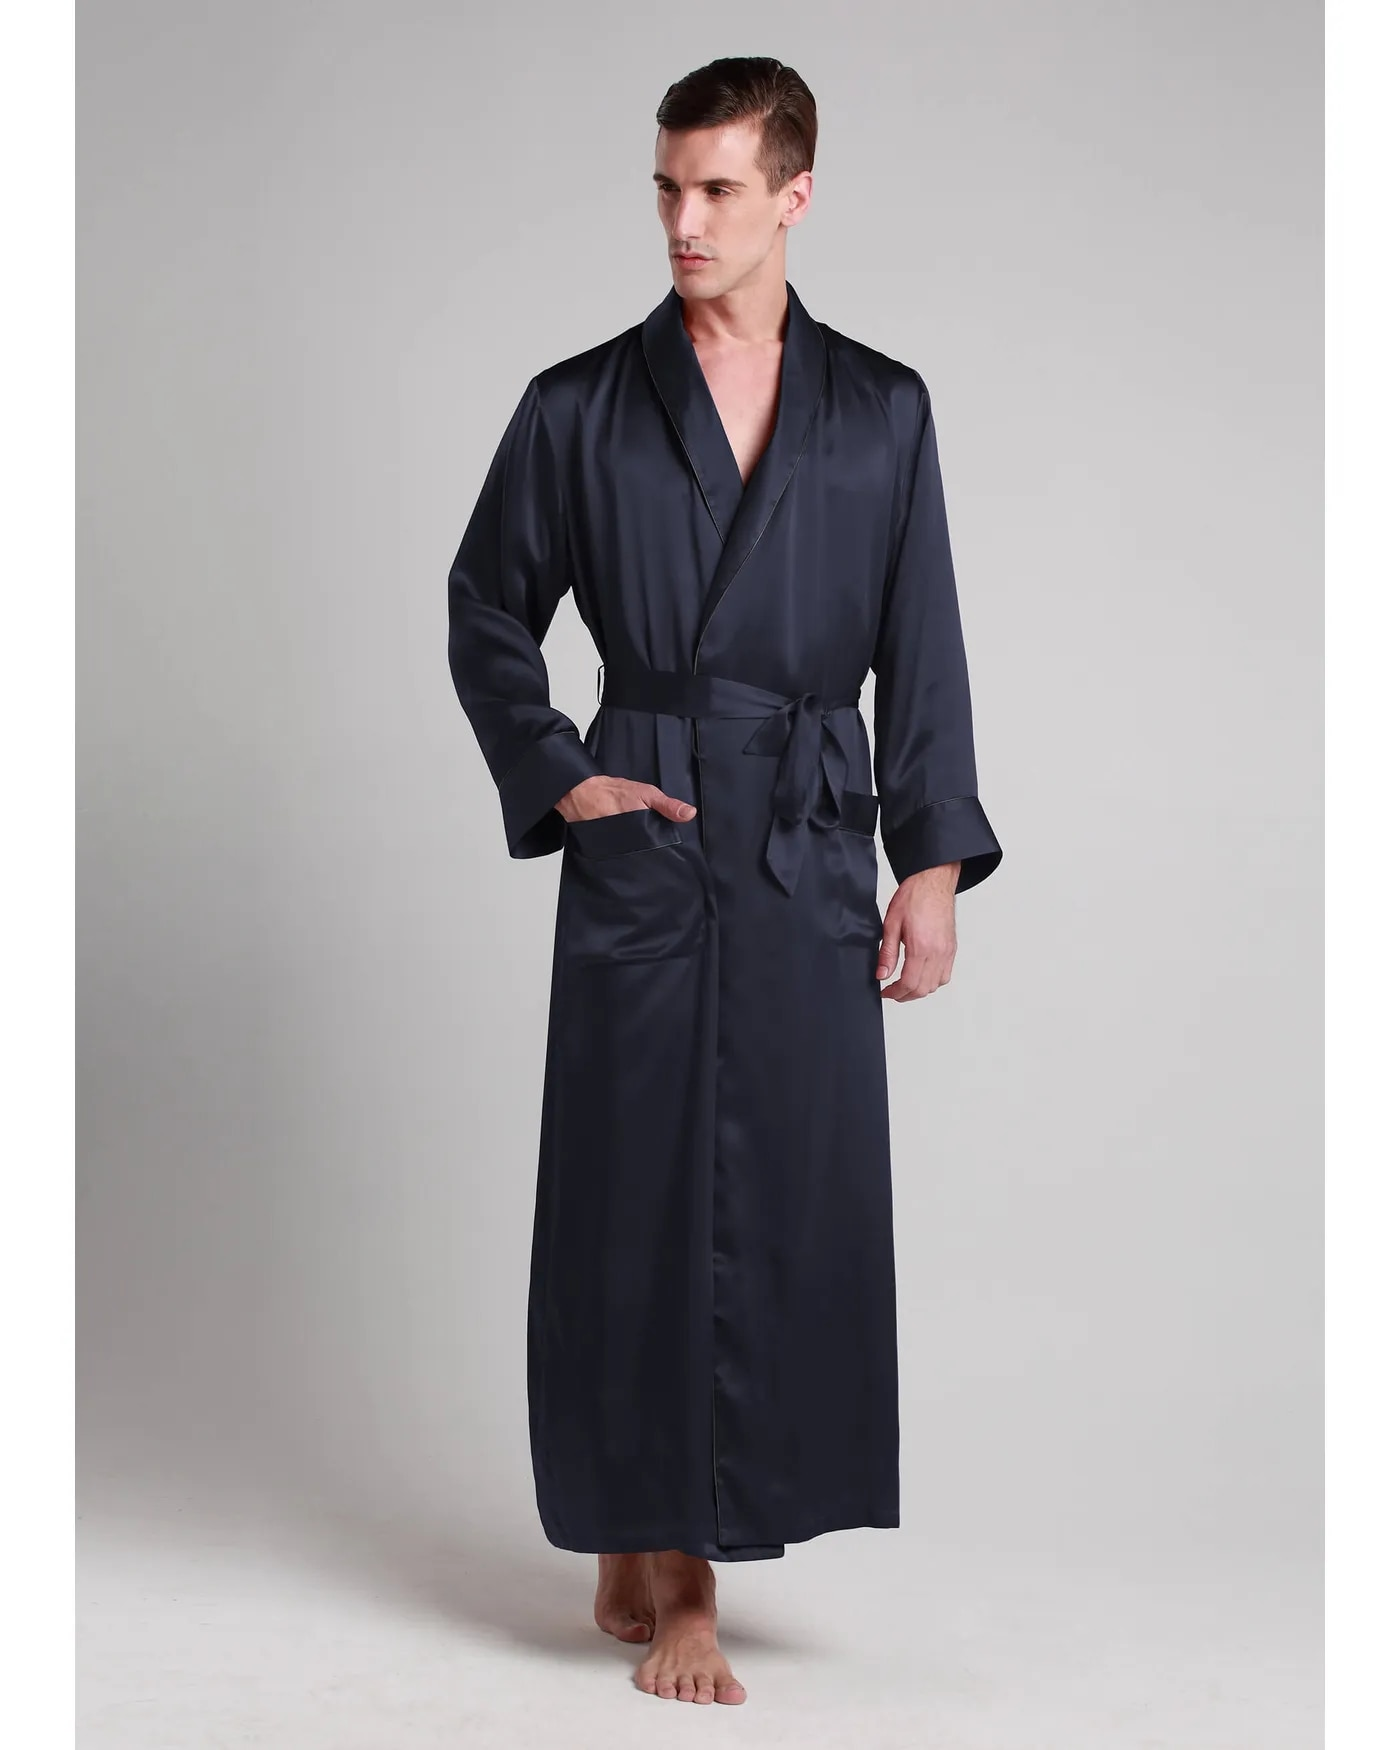 19 Momme Contra Full Length Pure Silk Men's Robe Long Bathrobe Home Lounge Sleepwear Nightgown Robes Can Customized